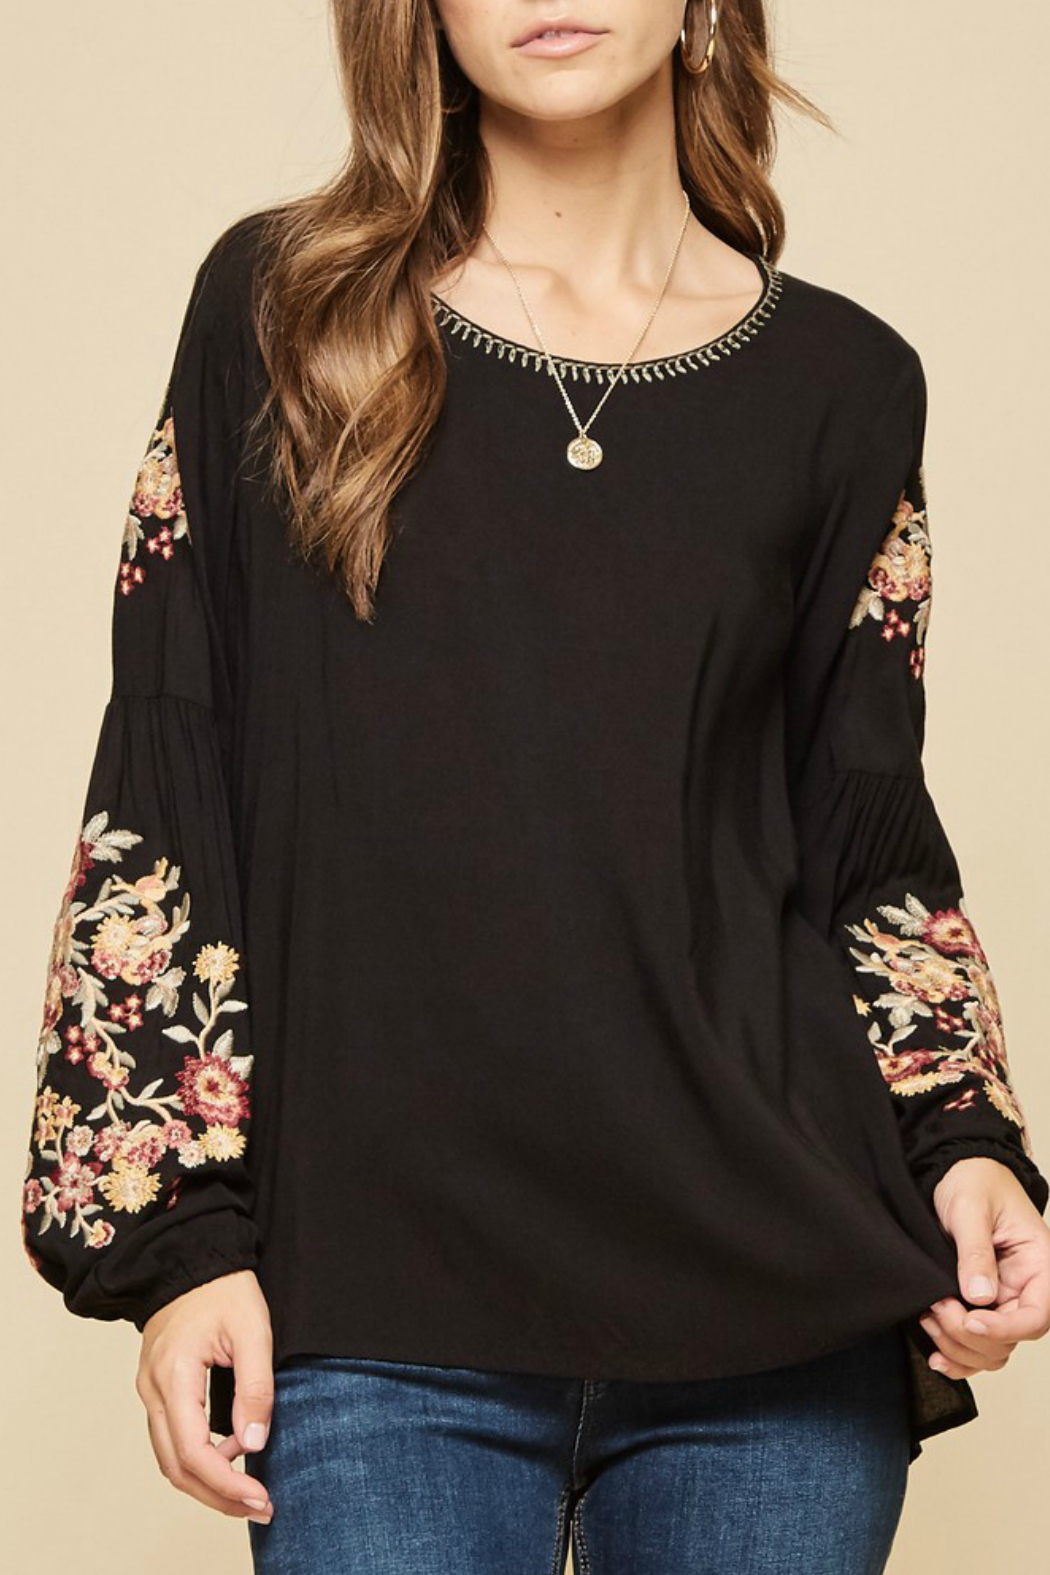 Andree by Unit embroidered sleeve detail top - Main Image